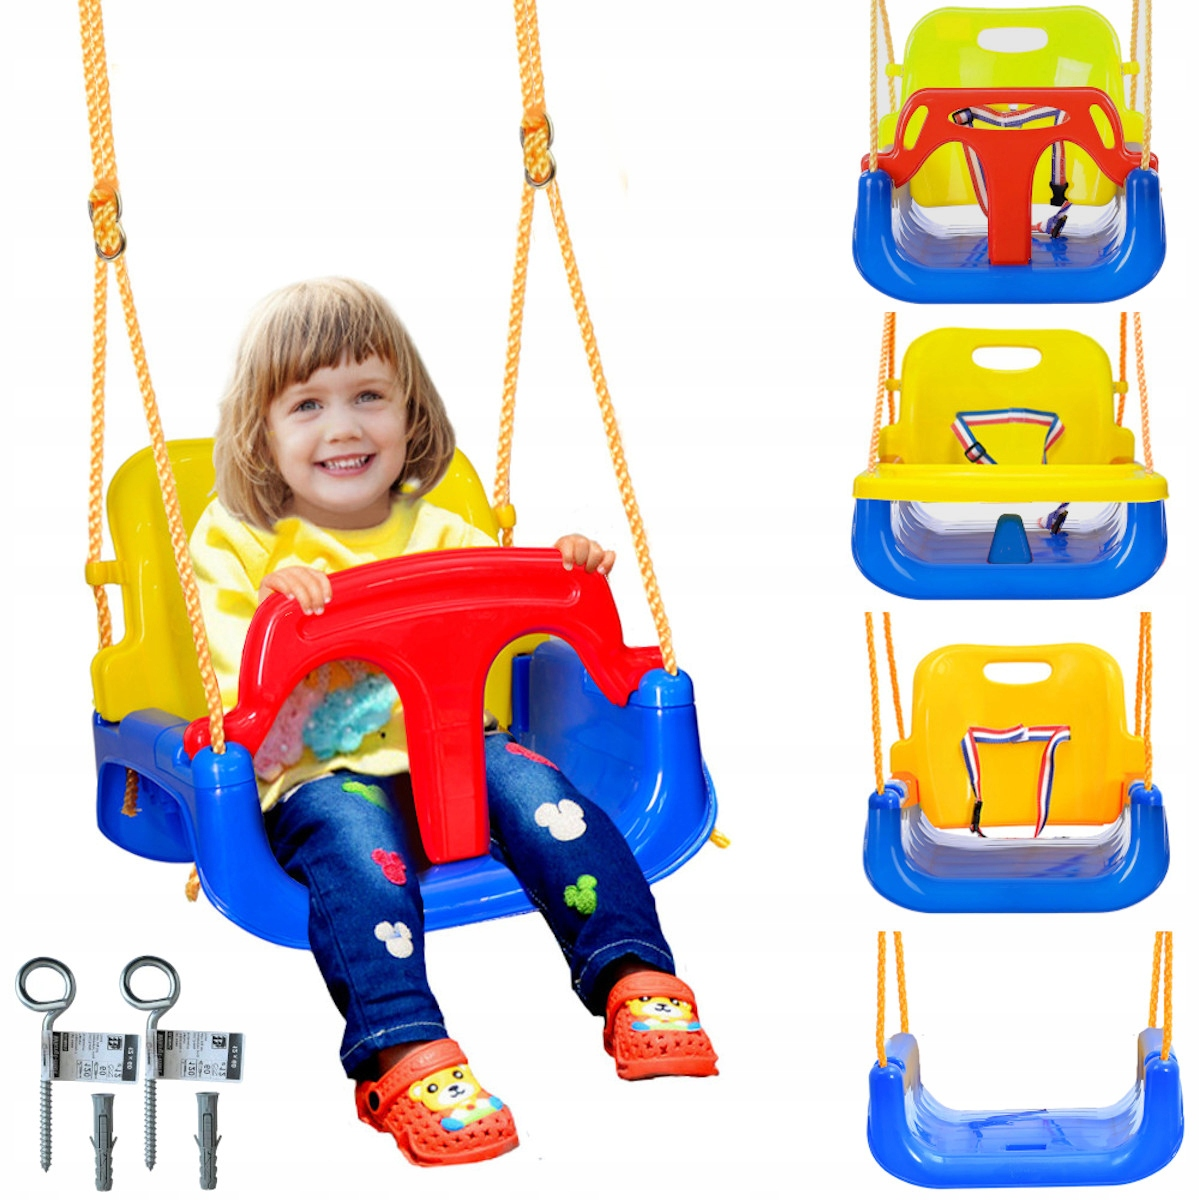 Детские качели STRONG HANGED 4in1 seat